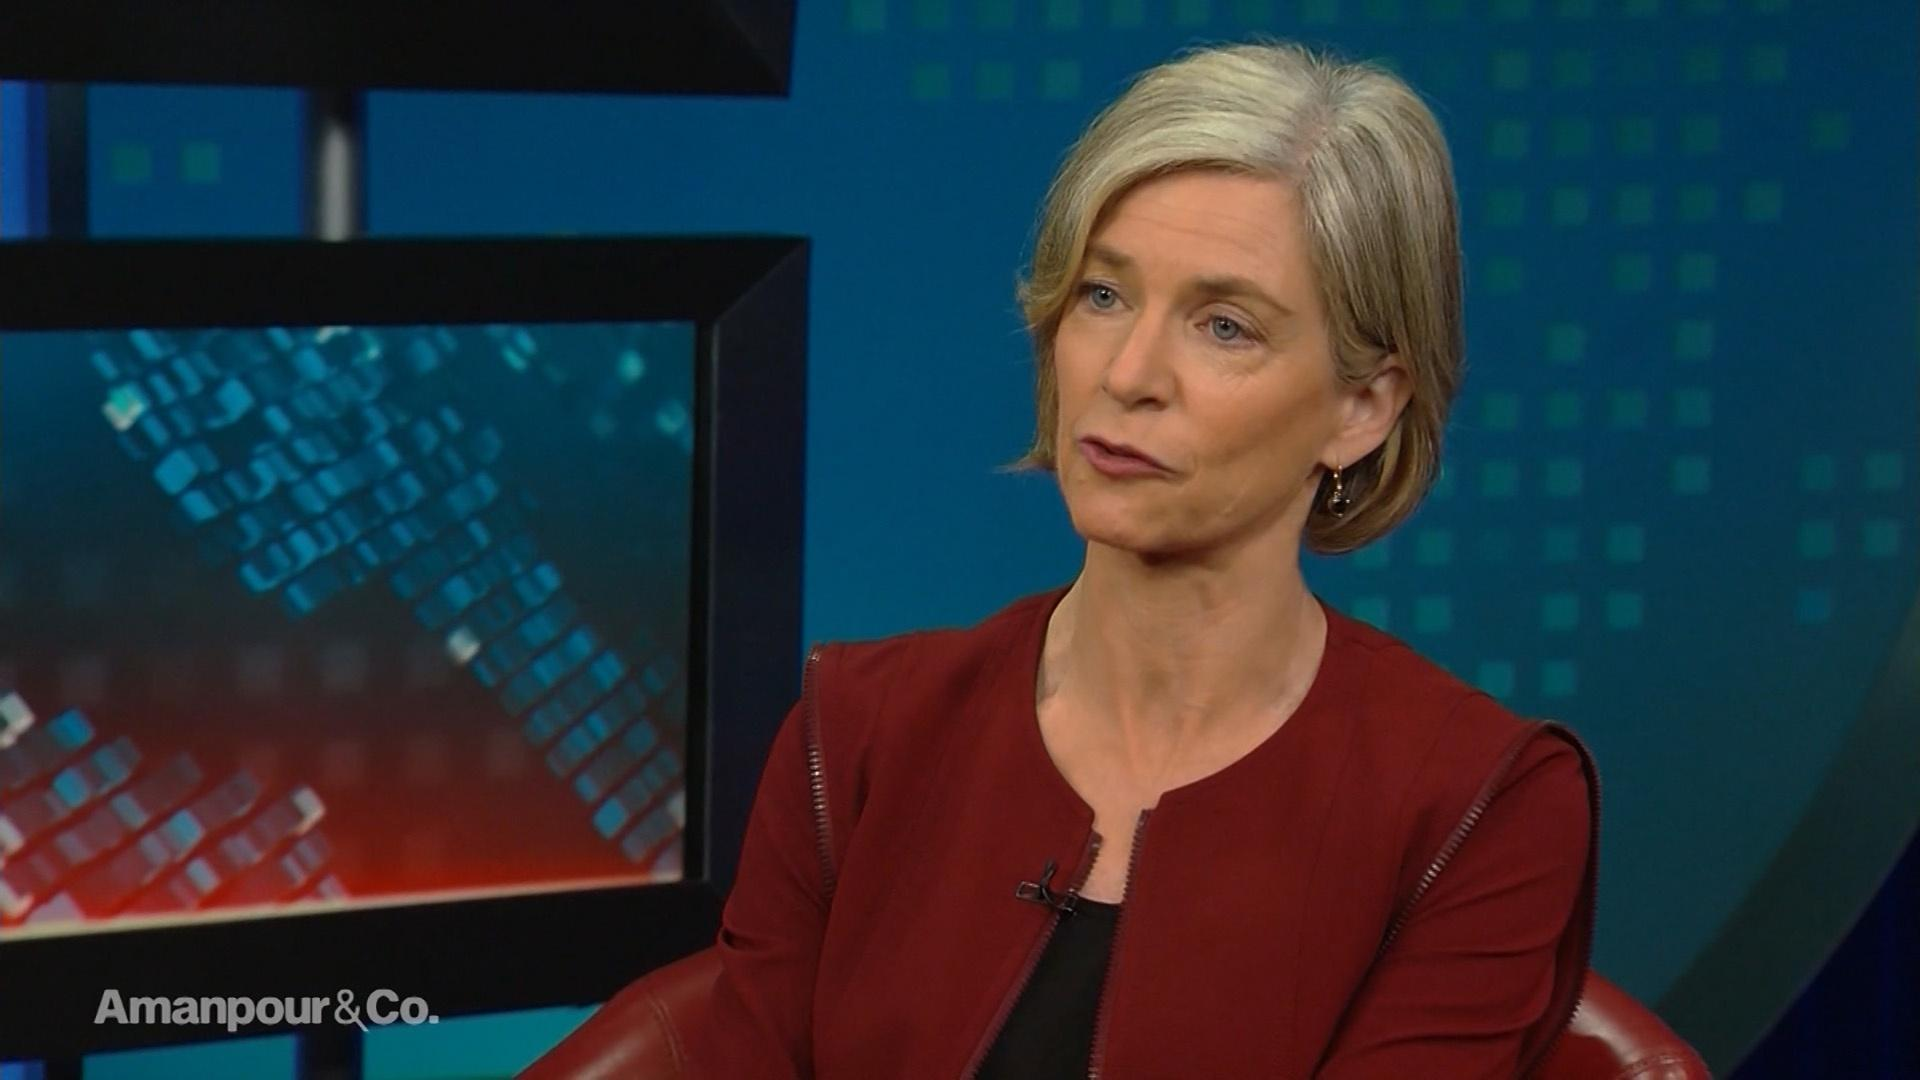 Biochemist Jennifer Doudna Discusses CRISPR